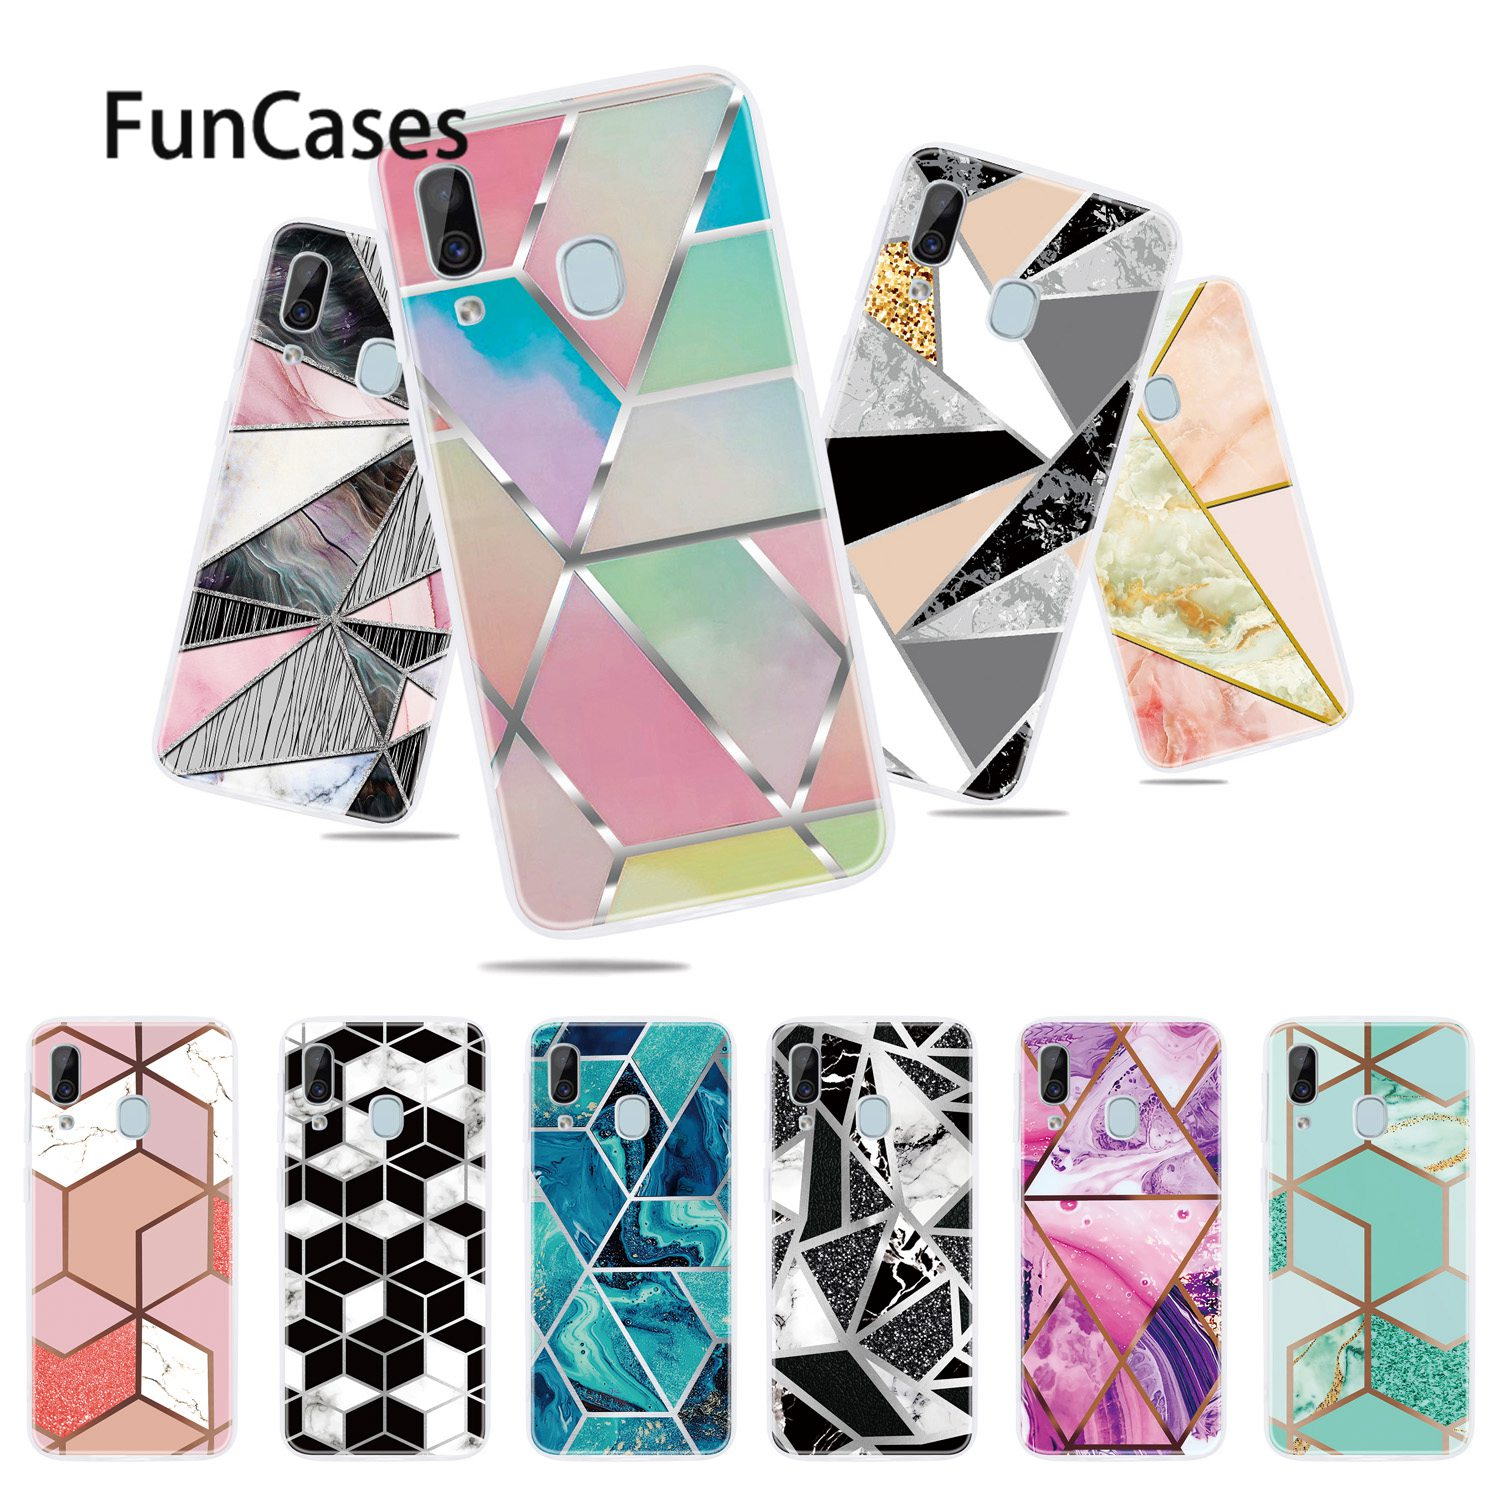 Soft TPU Cover For capa <font><b>Samsung</b></font> A20E Telephone Accesories sFor <font><b>Samsung</b></font> Galaxy coque A10E A30S A40 A70 A20S A20 A50S <font><b>A50</b></font> A30 A10 image